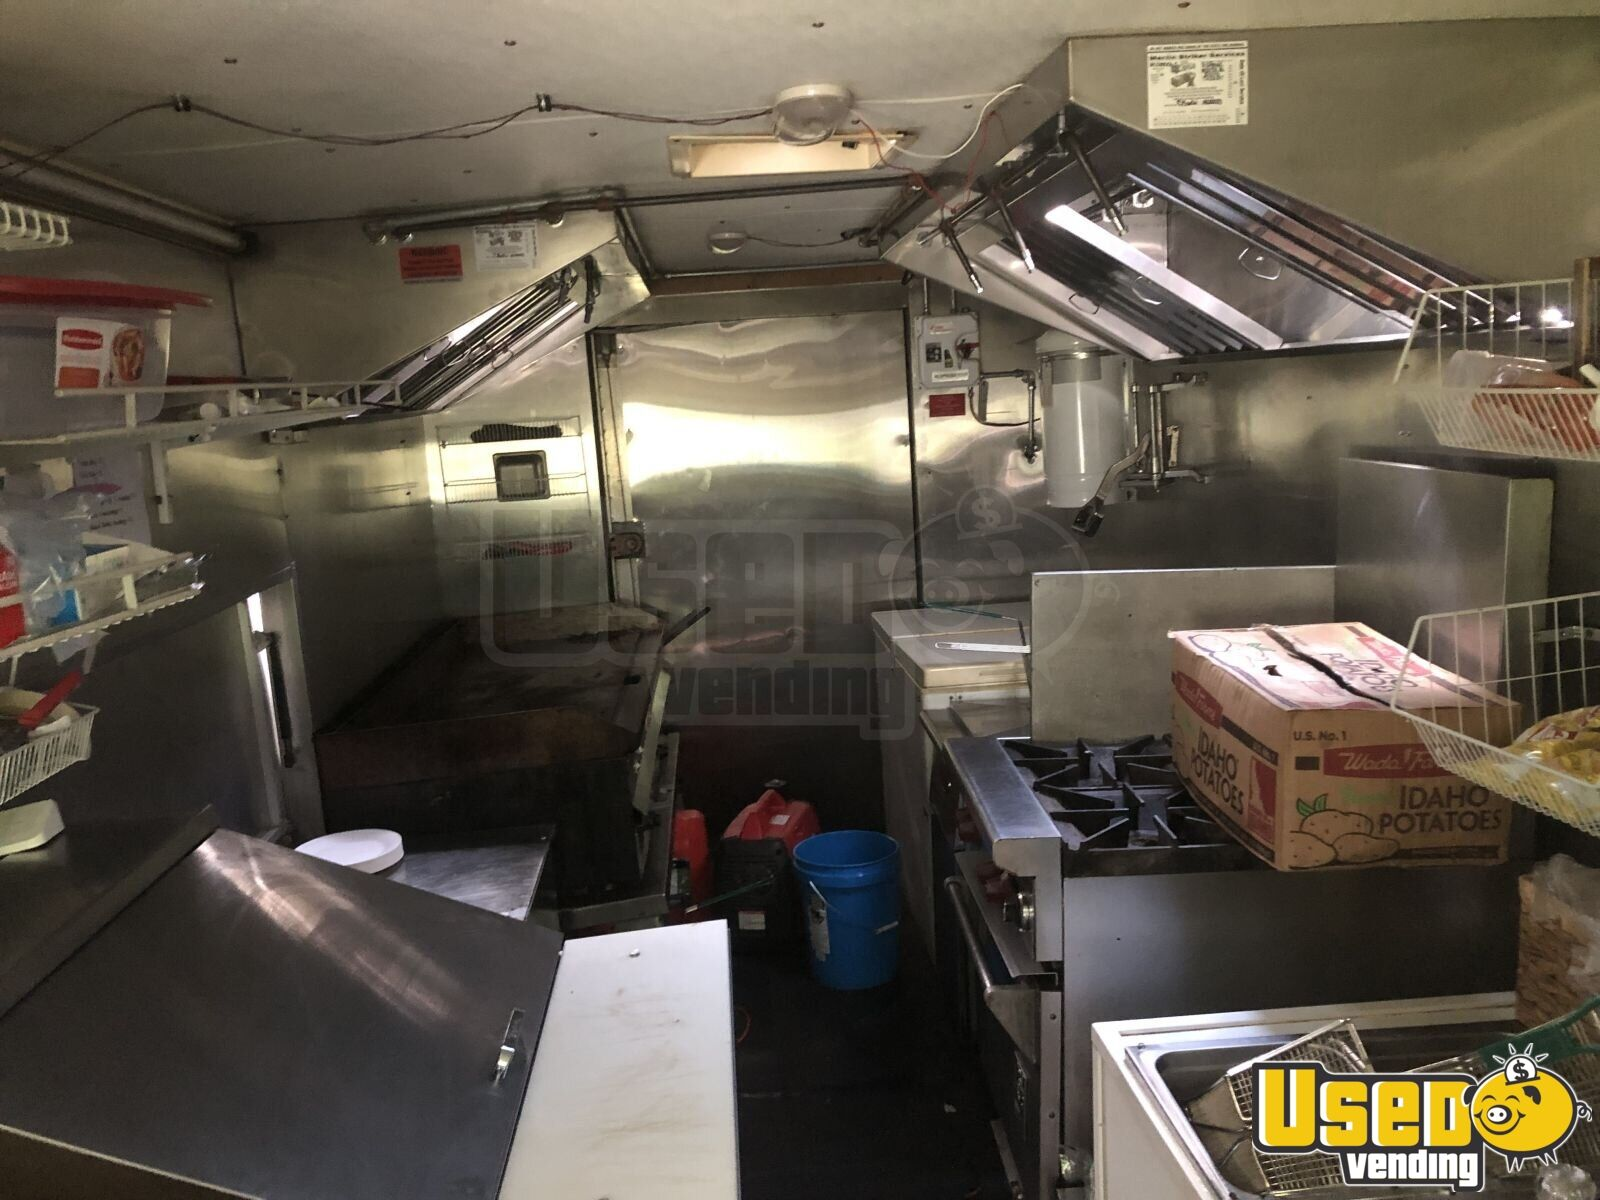 1997 Chevy P30 All-purpose Food Truck Concession Window Massachusetts for Sale - 2